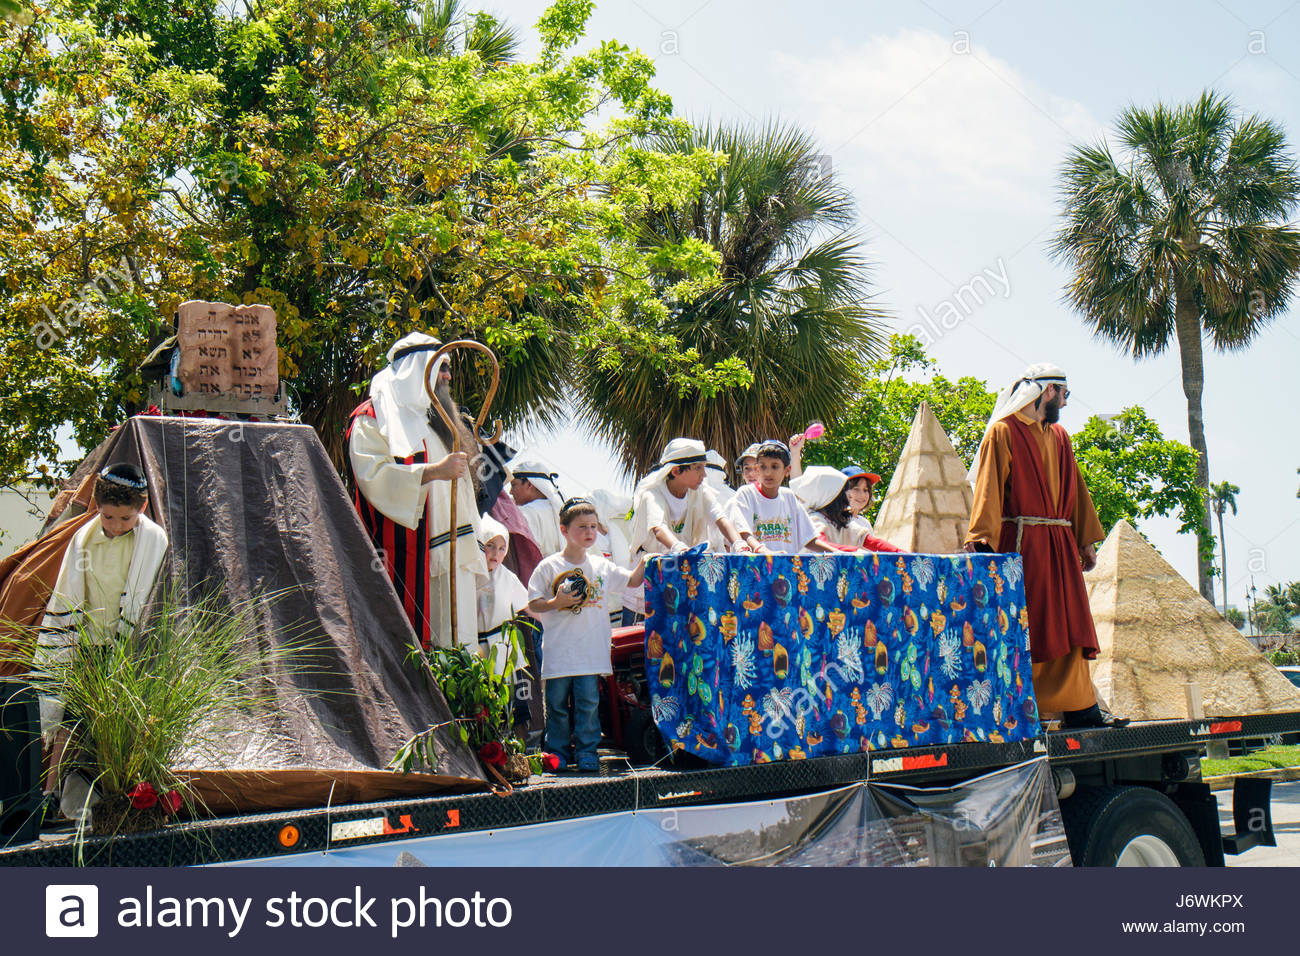 Miami Florida Hallandale South Florida Jewish Community Lag B'omer Jewish Unity Parade & and Fair Jew tradition - Stock Image